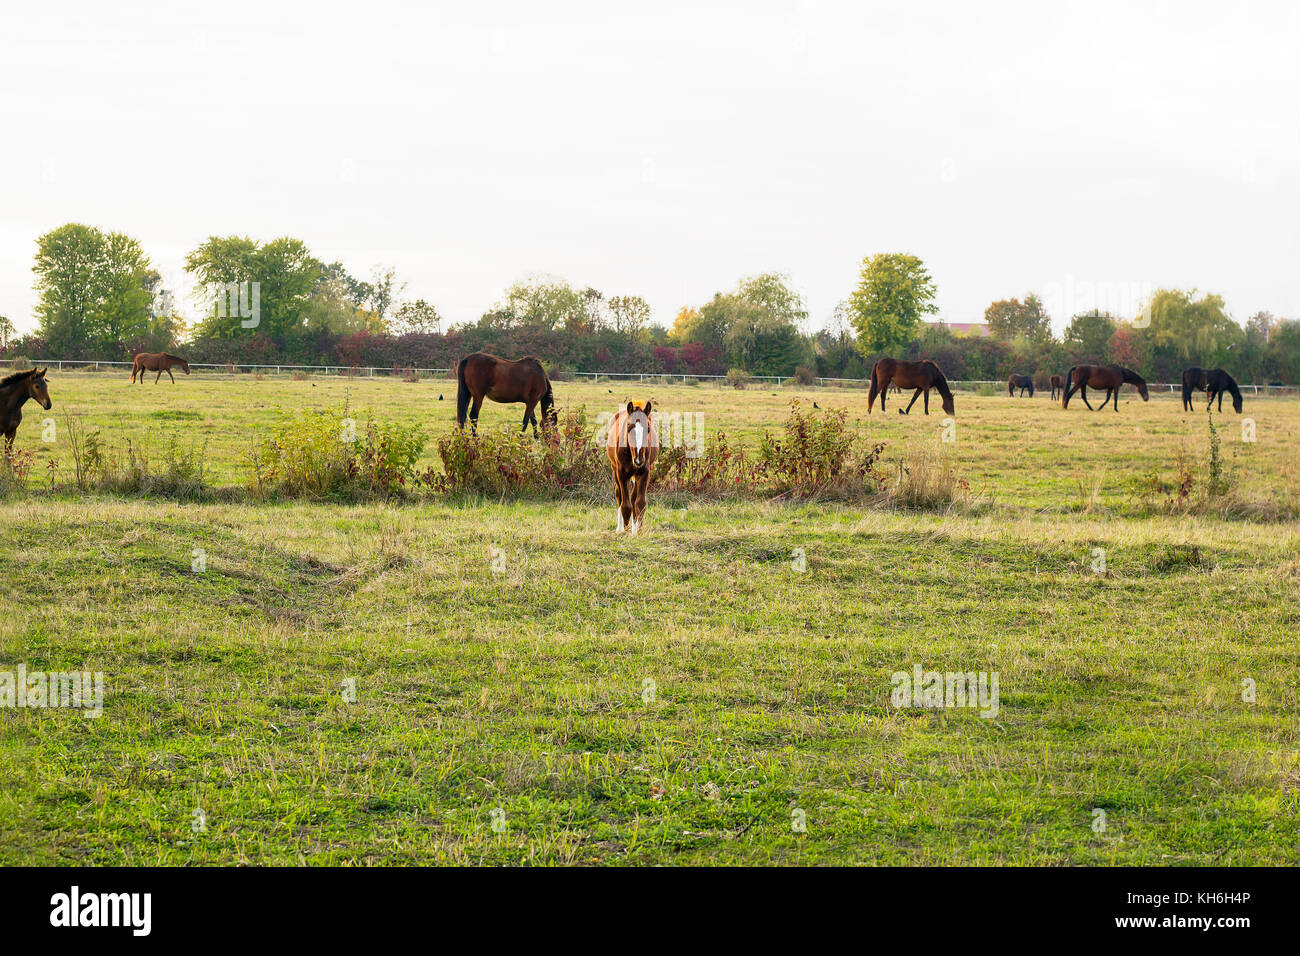 Foal and herd of horses grazing on meadow Stock Photo